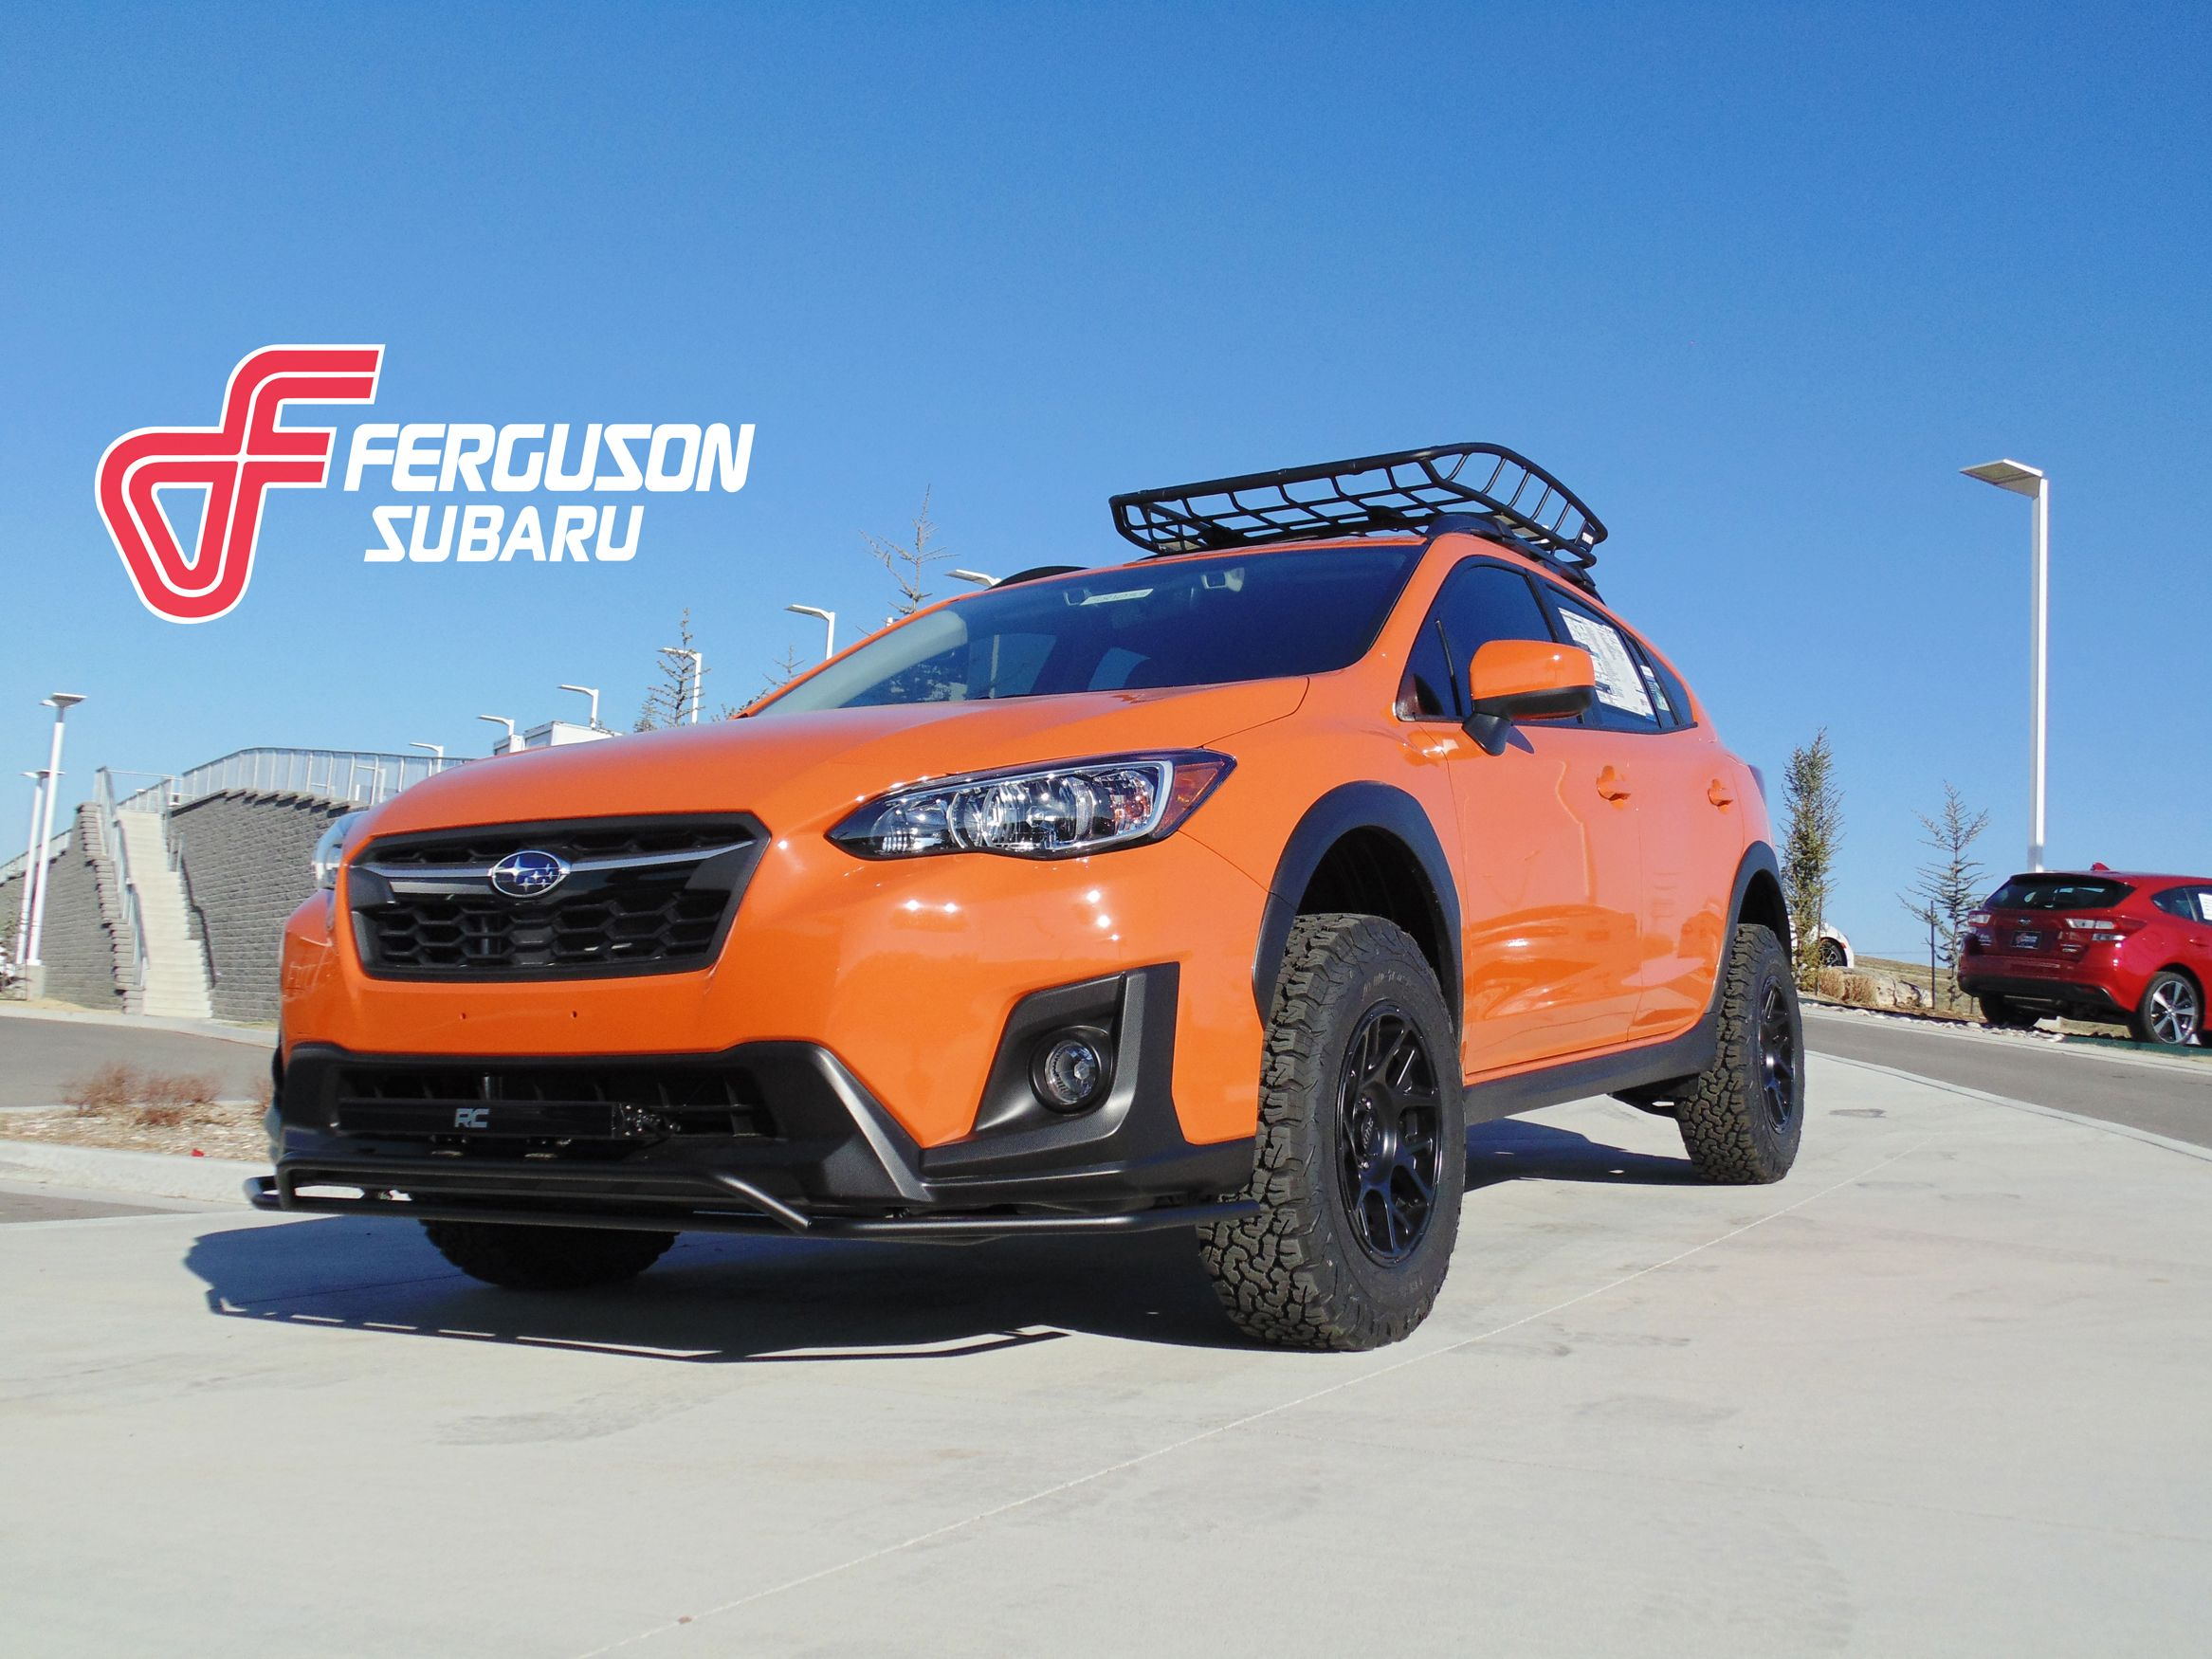 Bring Some Extra Sunshine Into Your Life With This Lifted 2018 Crosstrek Orange Lifted Crosstrek Subaru Subaru Crosstrek Dream Cars